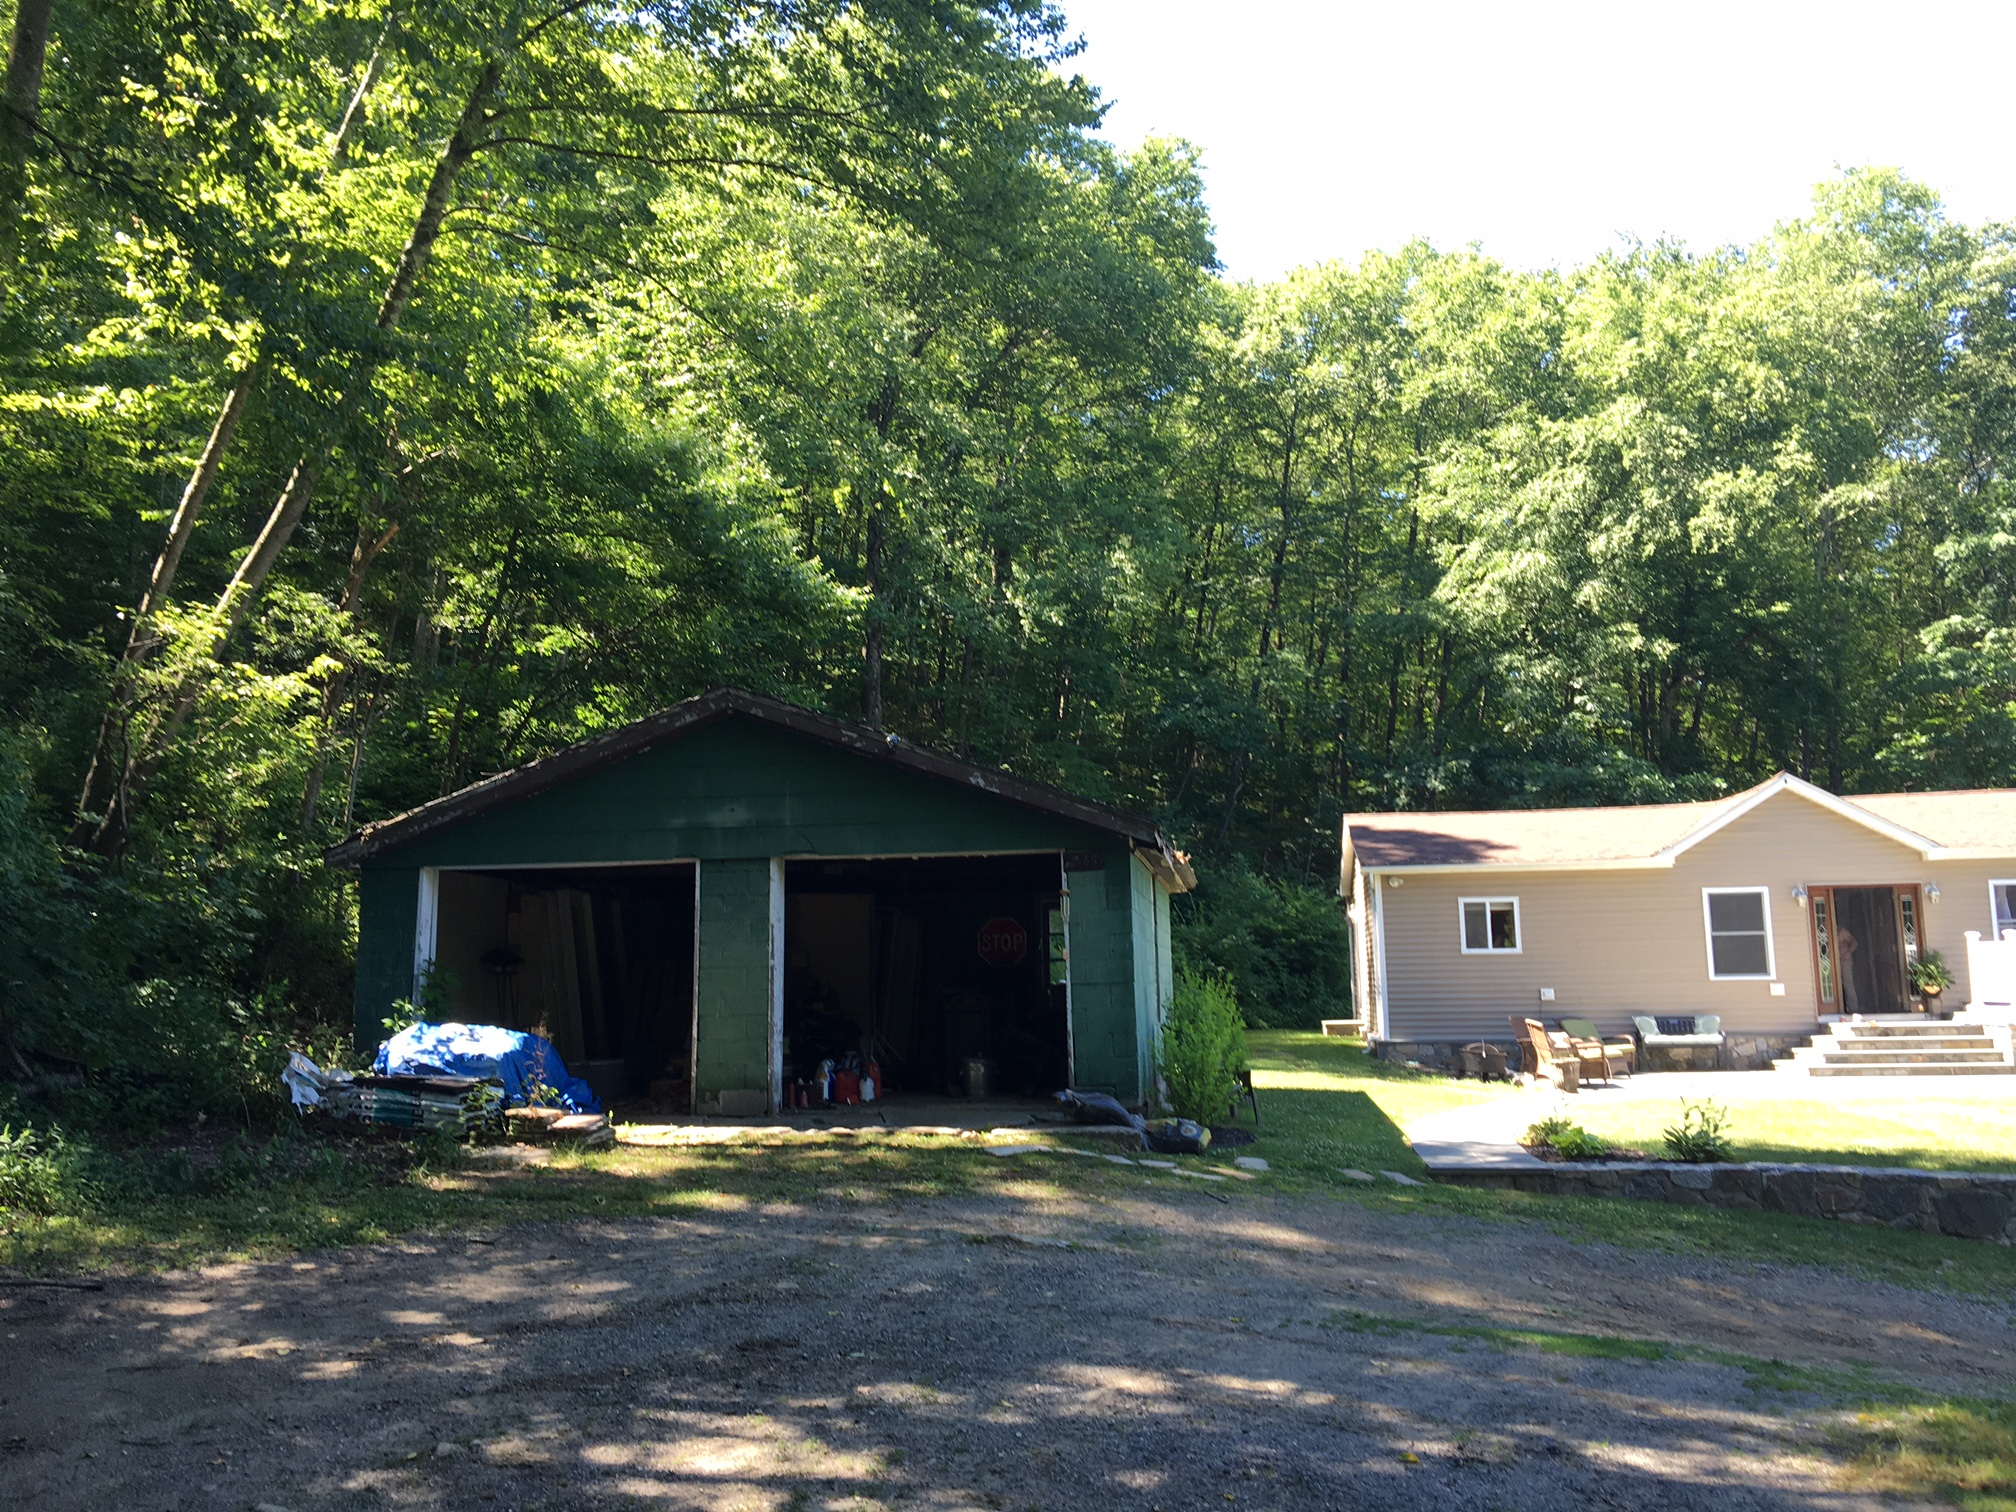 Garage tear down-July 2016